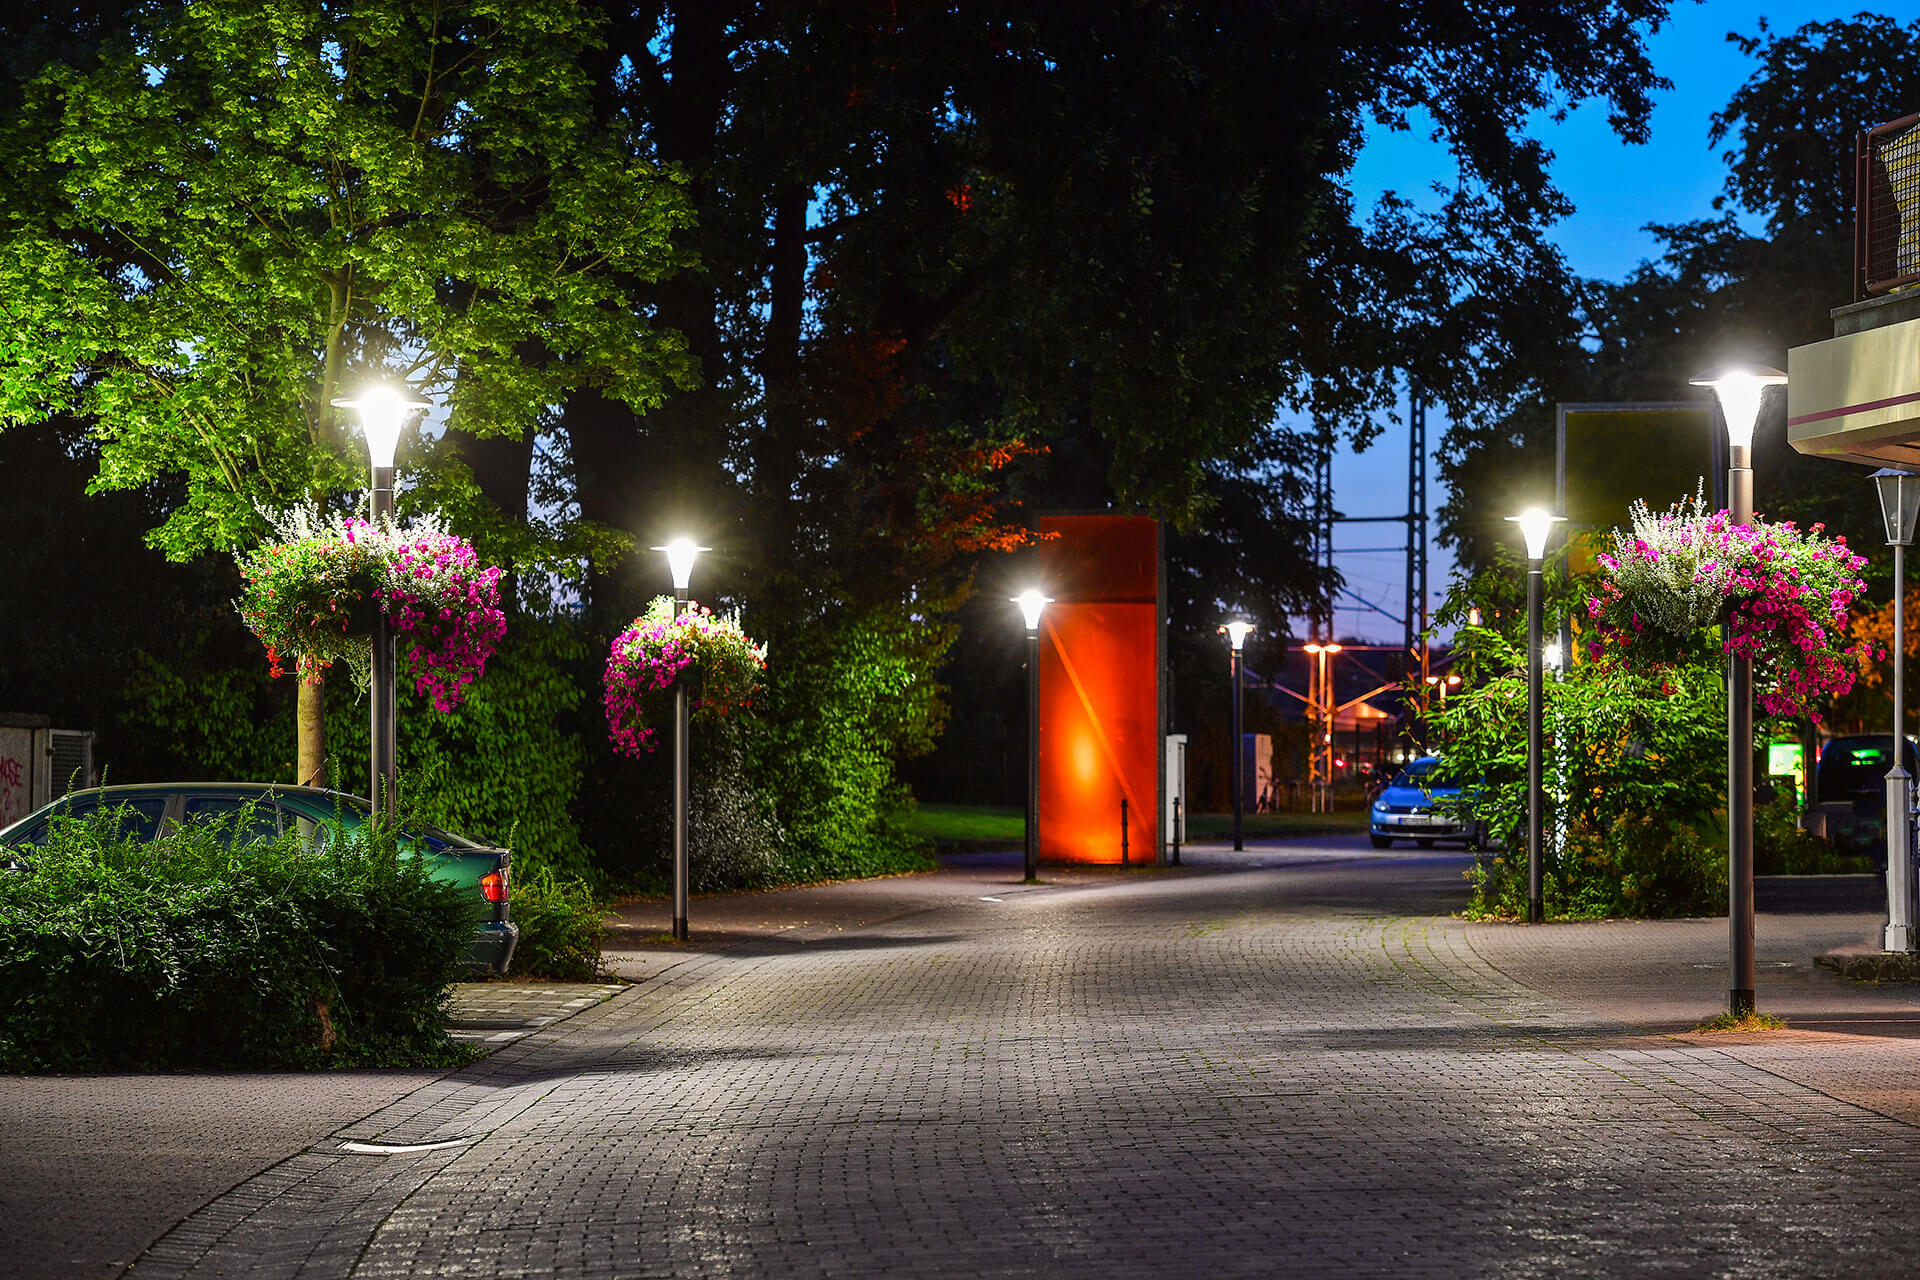 Pilzeo urban luminaire brings an aesthetic touch to the landscapes of Herzogenrath and Würselen in Germany